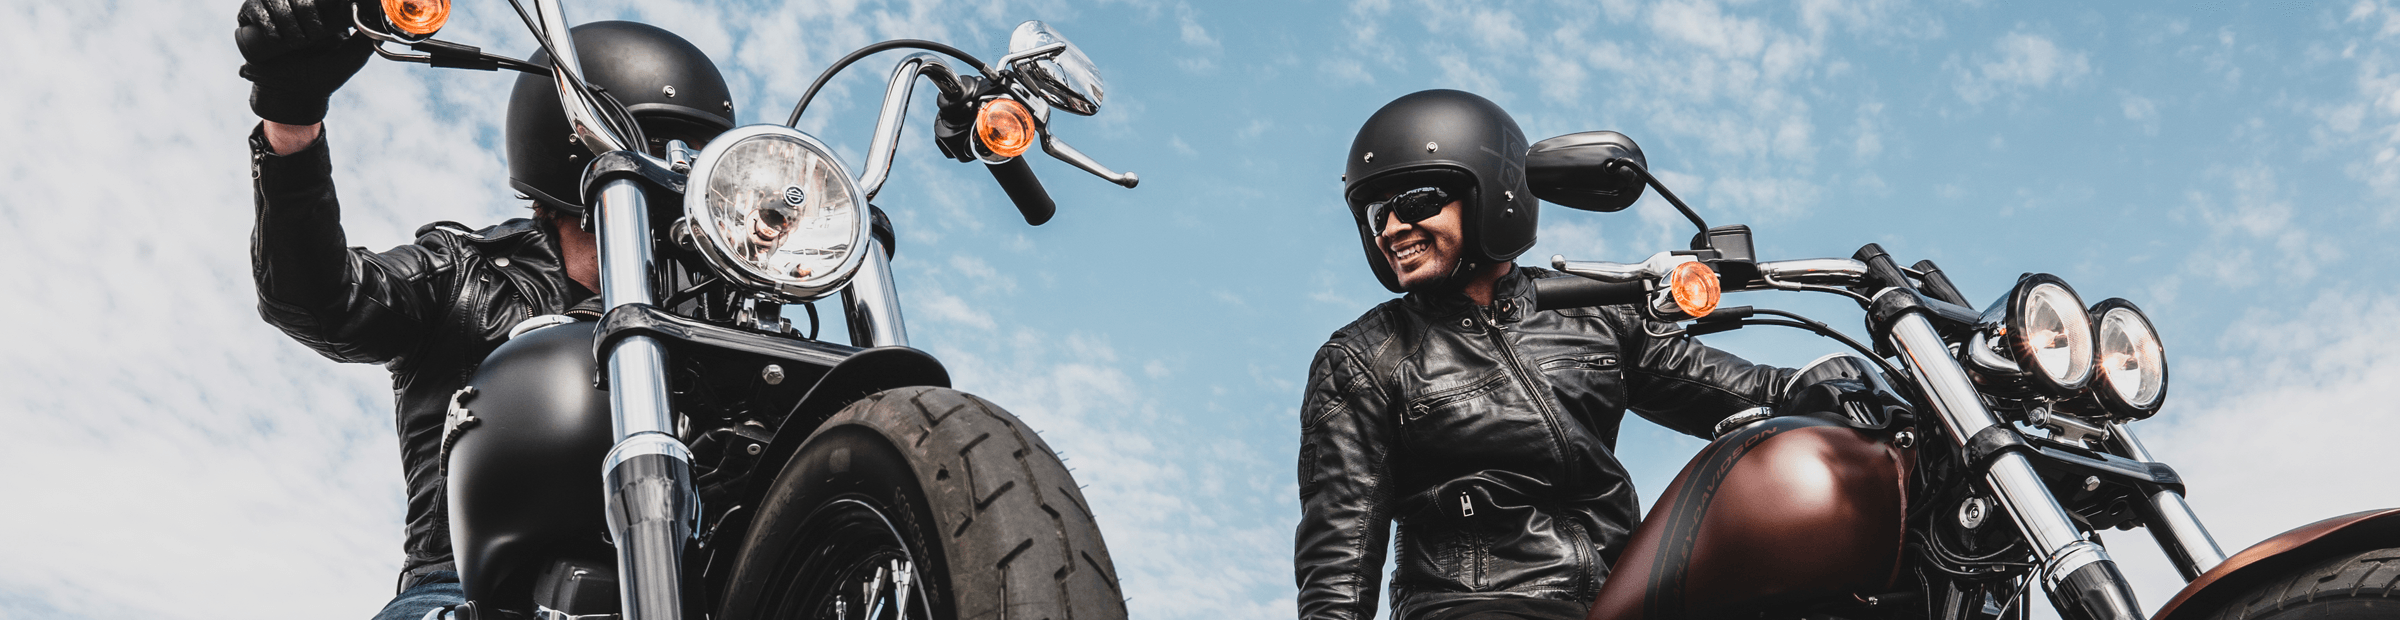 Doc's Harley-Davidson® Dealer Specials